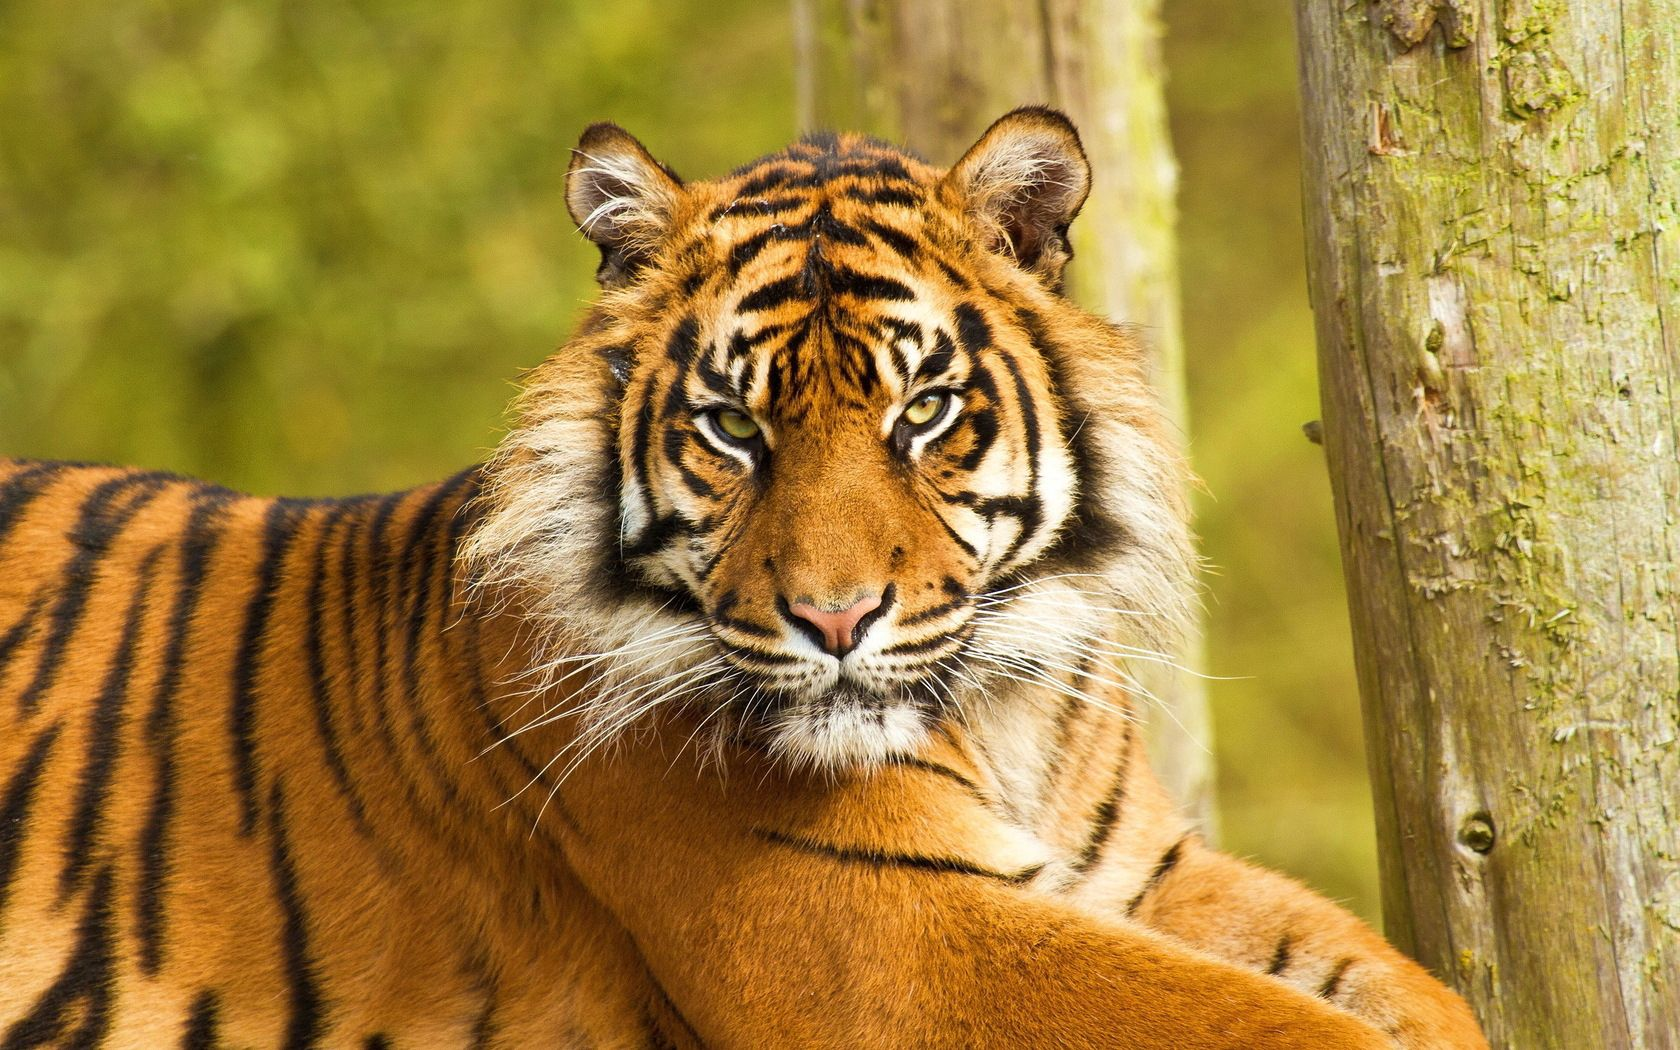 155706 download wallpaper Animals, Tiger, Muzzle, Striped, Predator, Big Cat, Sit screensavers and pictures for free